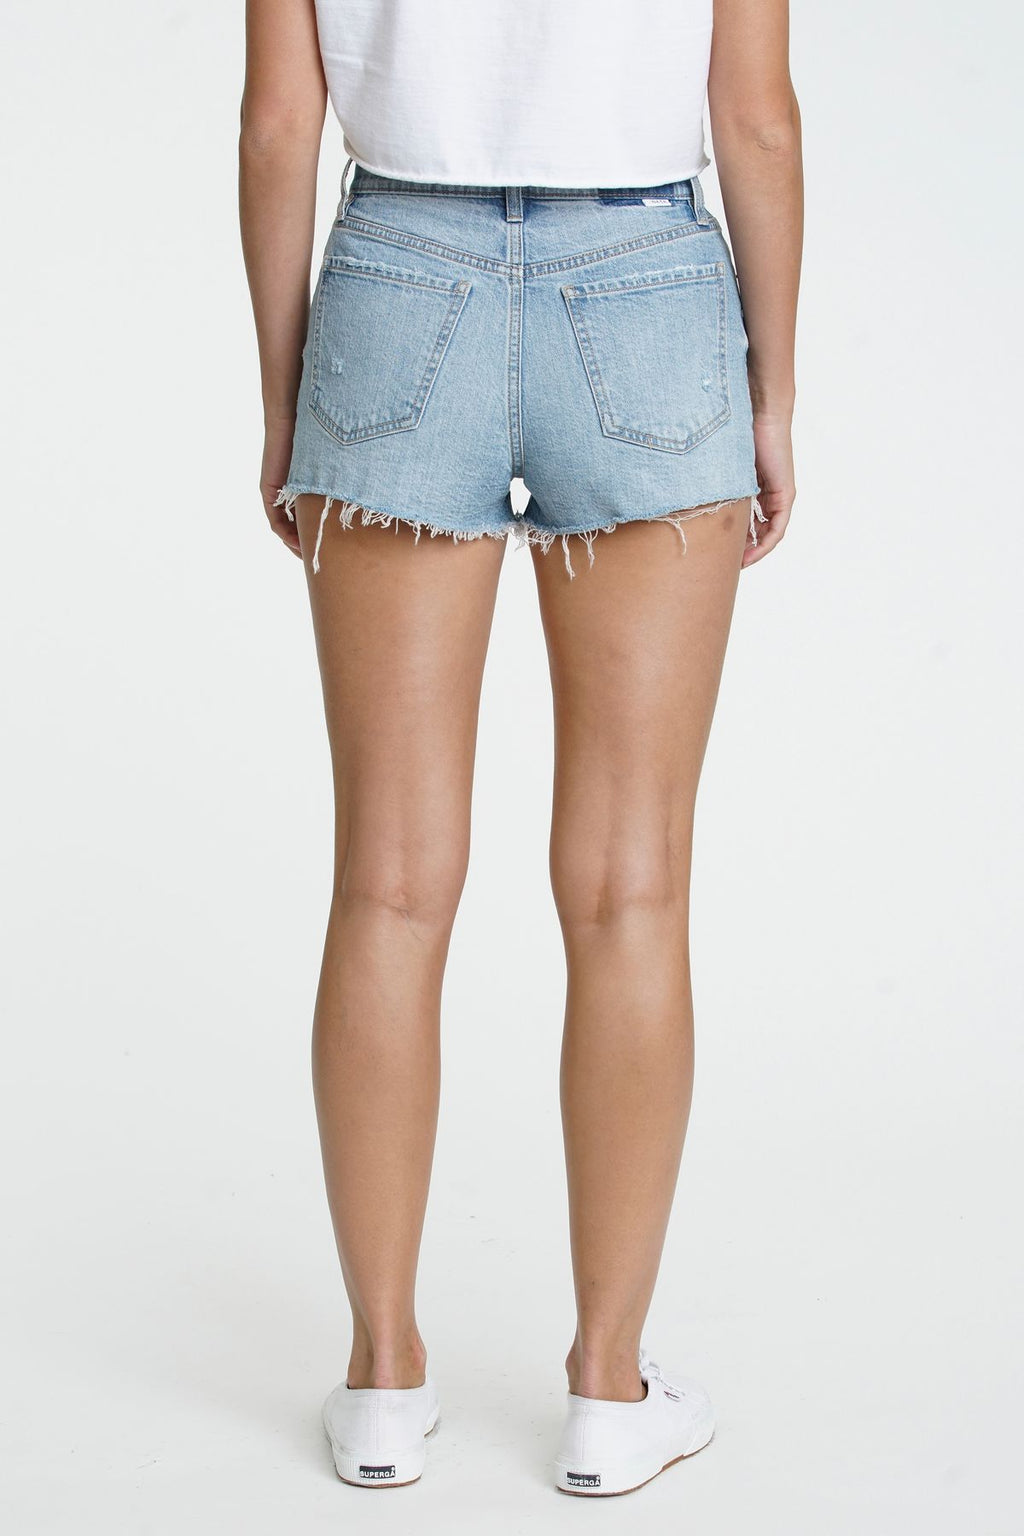 Sundazed Short